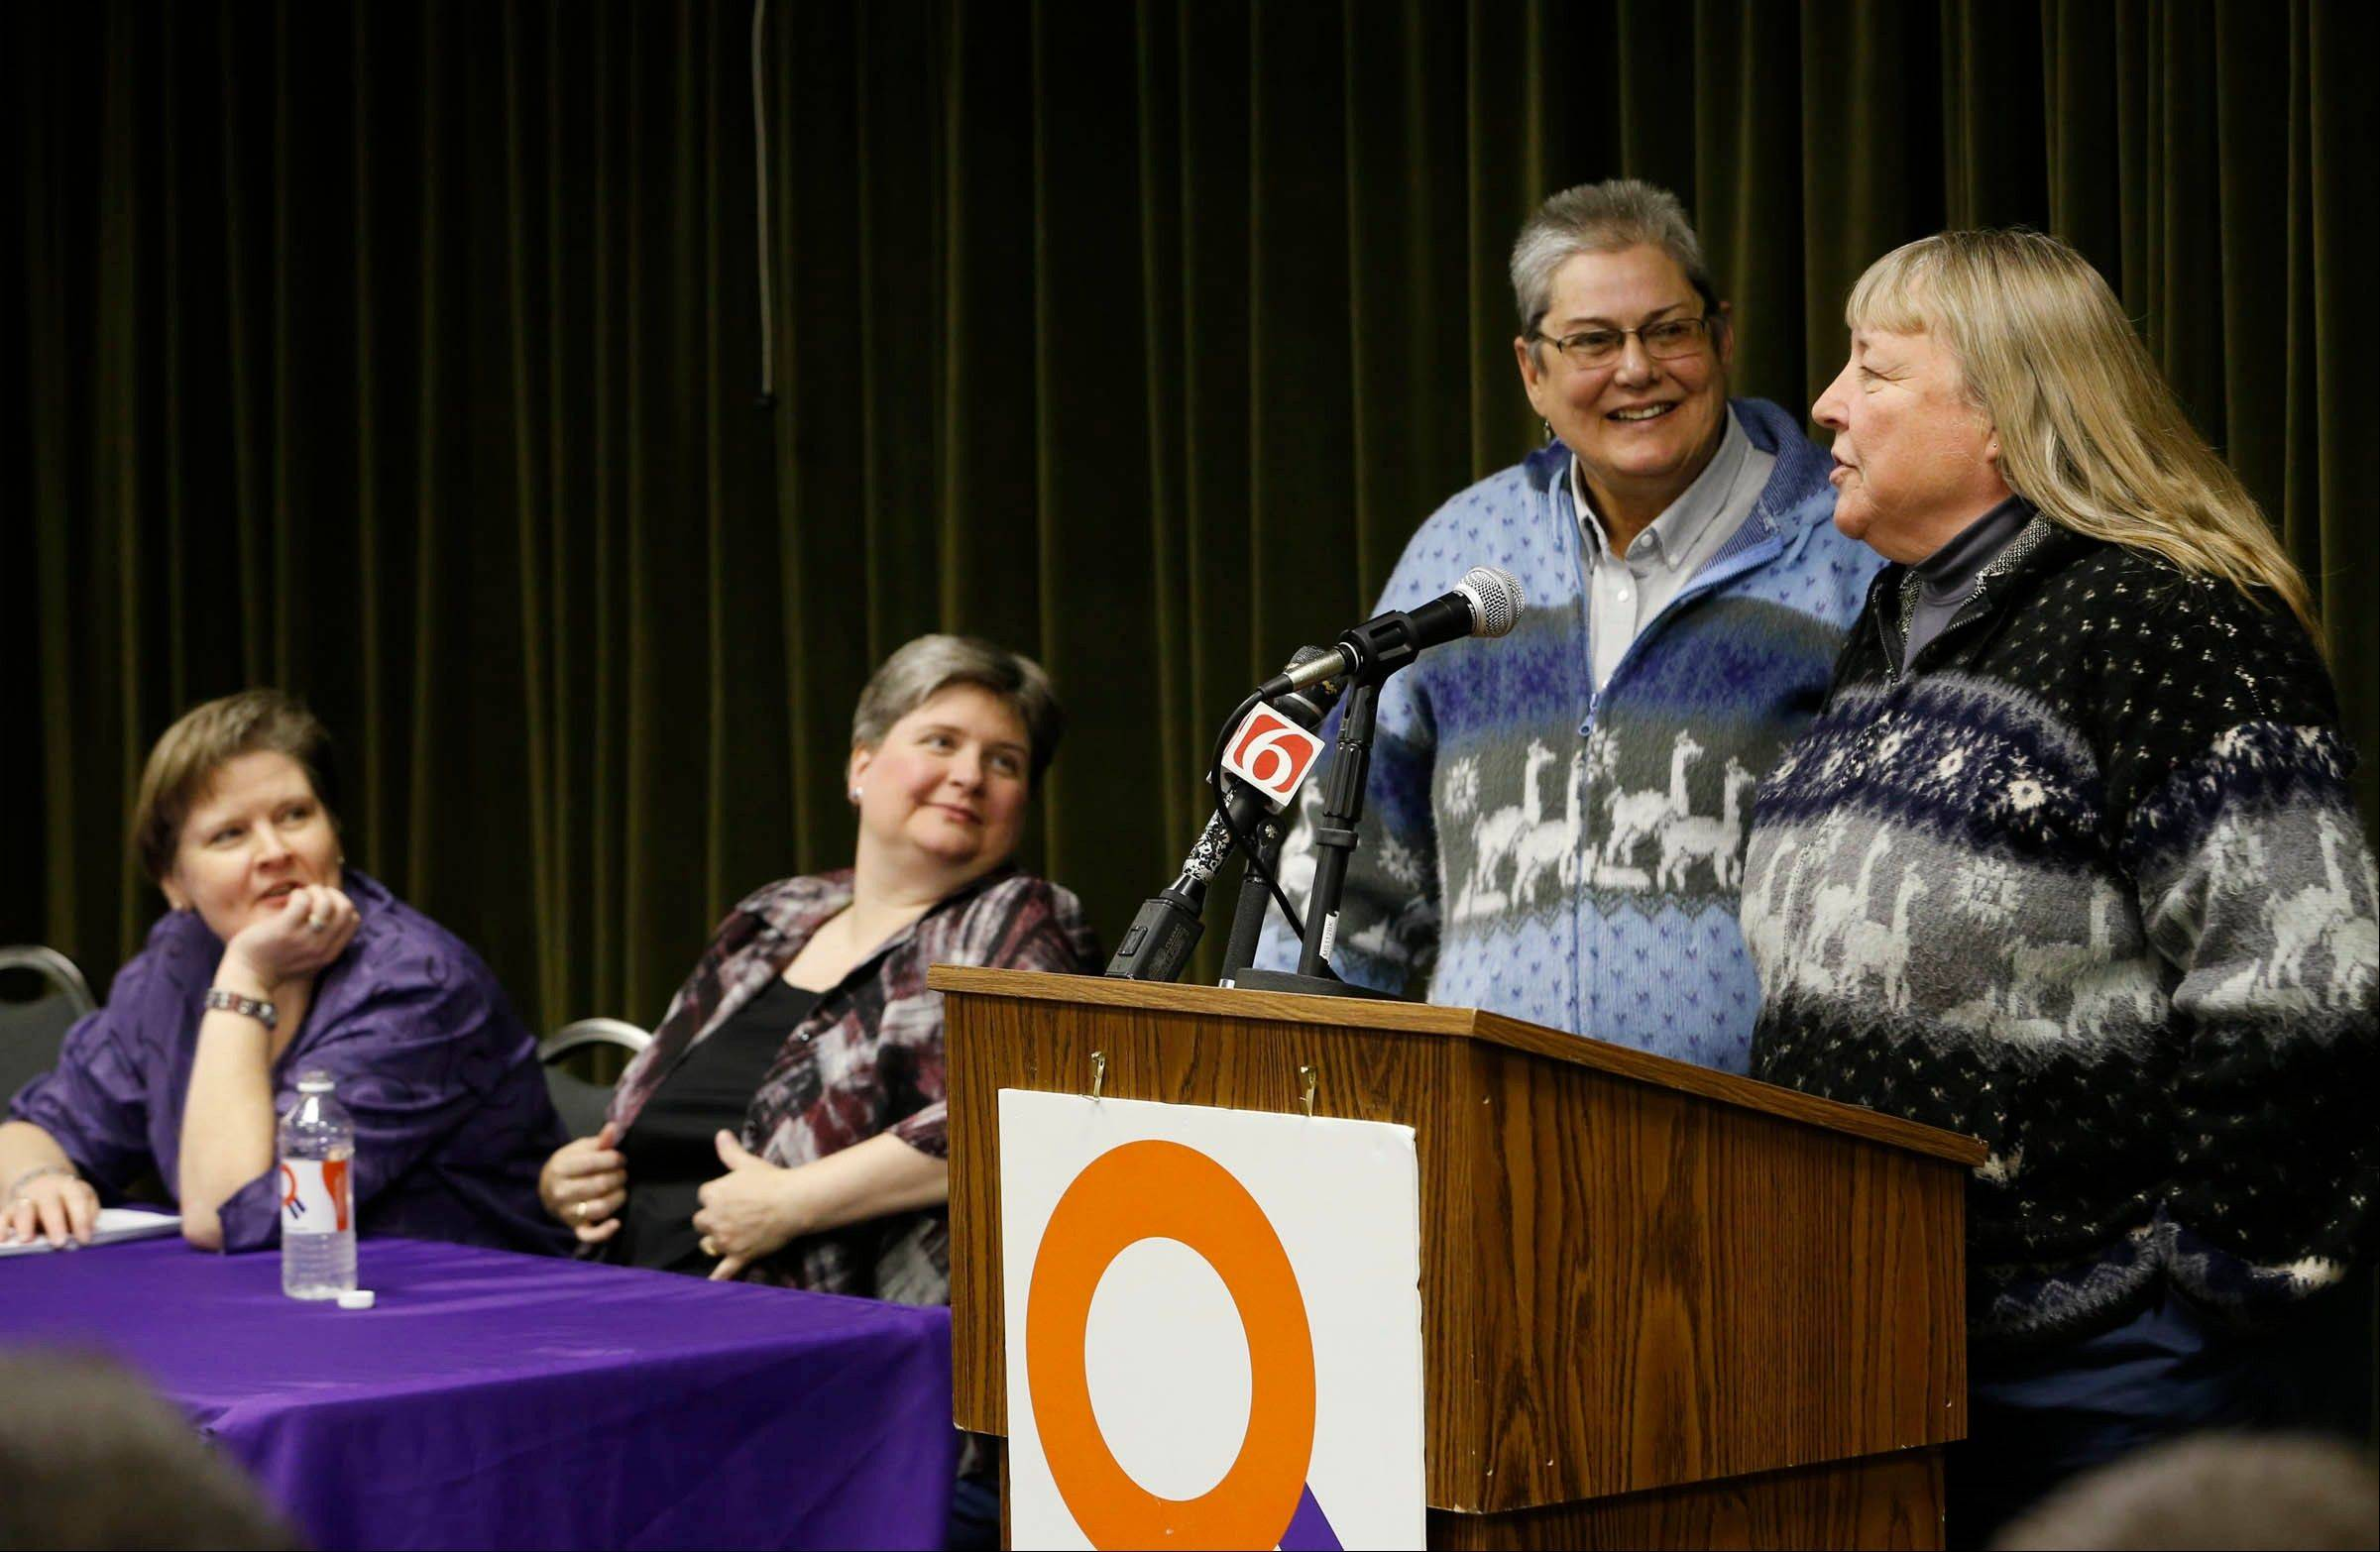 Mary Bishop, left, and her partner Sharon Baldwin listen as Sue Barton and her partner Gay Phillips speak to guests during a celebration Tuesday at the Dennis R. Neill Equality Center, in Tulsa, Okla. A federal judge struck down Oklahoma�s gay marriage ban Tuesday, but headed off any rush to the altar by setting aside his order while state and local officials complete an appeal.